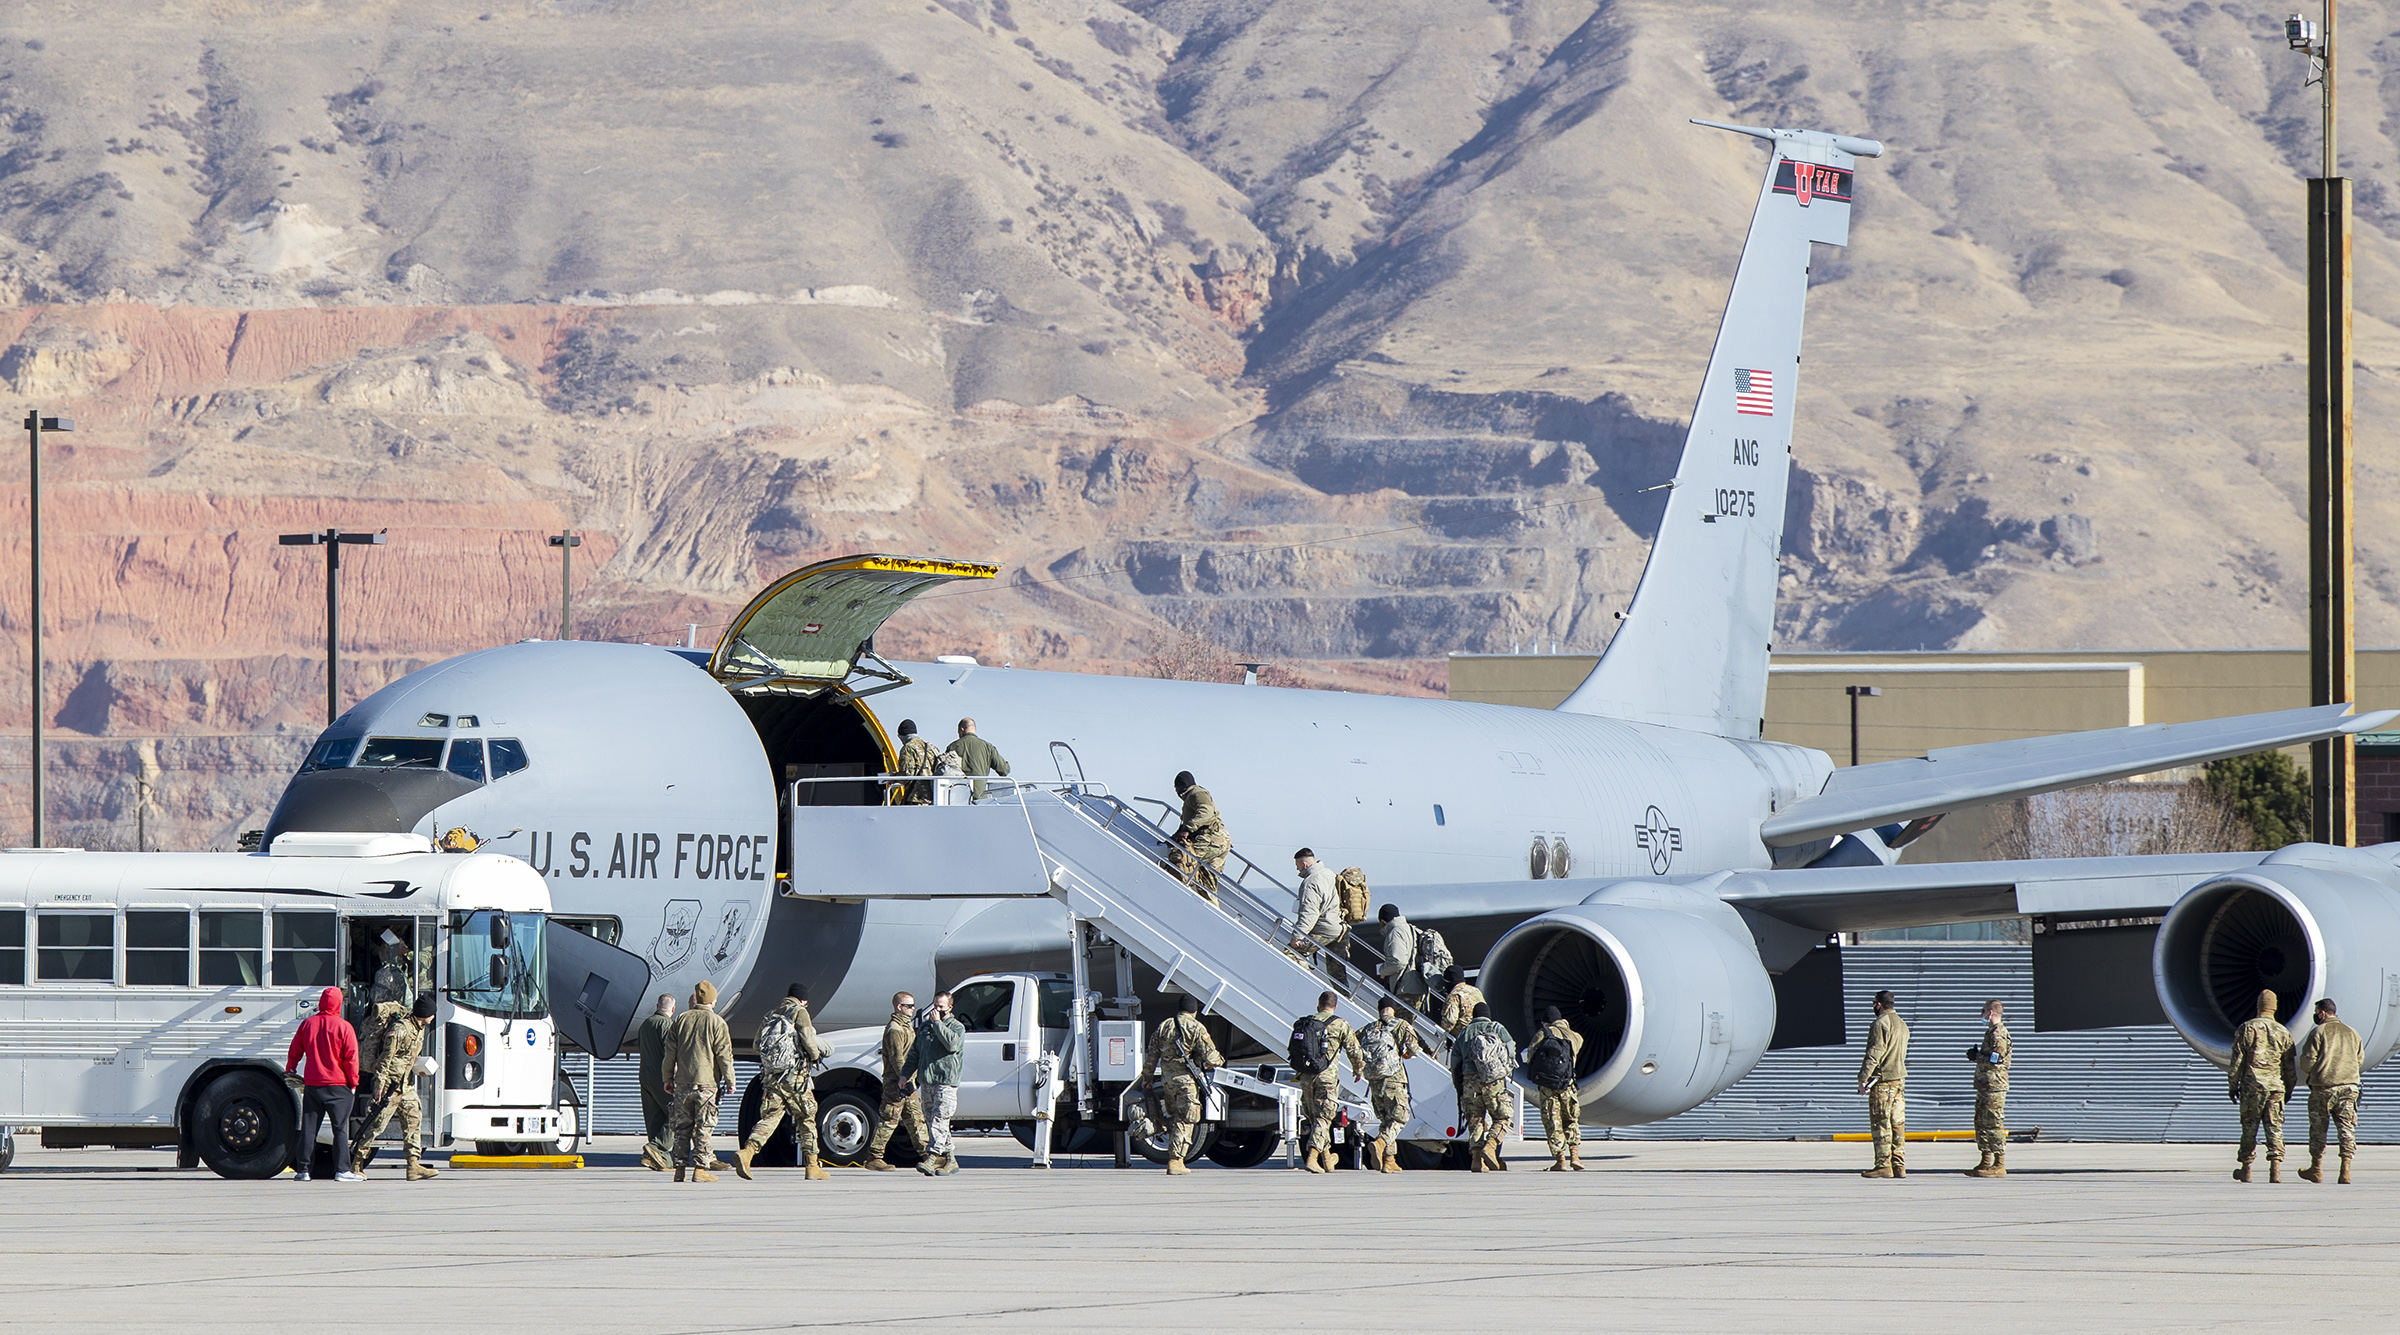 Members of the Utah National Guard board a KC-135 jet at Roland R. Wright Air National Guard Base in Salt Lake City on Friday, Jan. 15, 2021. The Guardsmen are bound for Washington, D.C., to support civil authorities during the inauguration of President-elect Joe Biden.